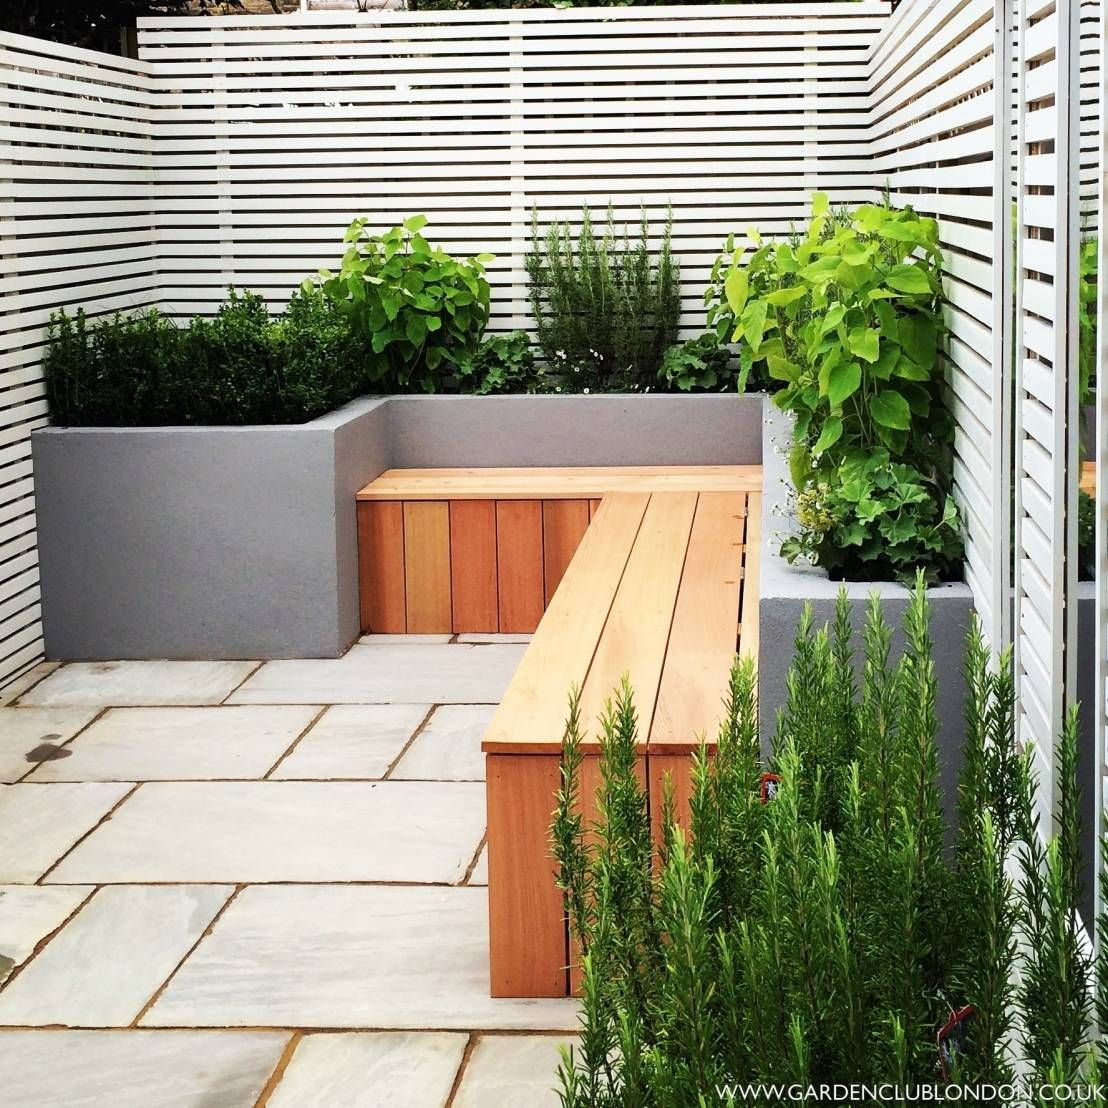 9 Proven Ways Clever People Add Value To Their Home Small Back Garden Idemall